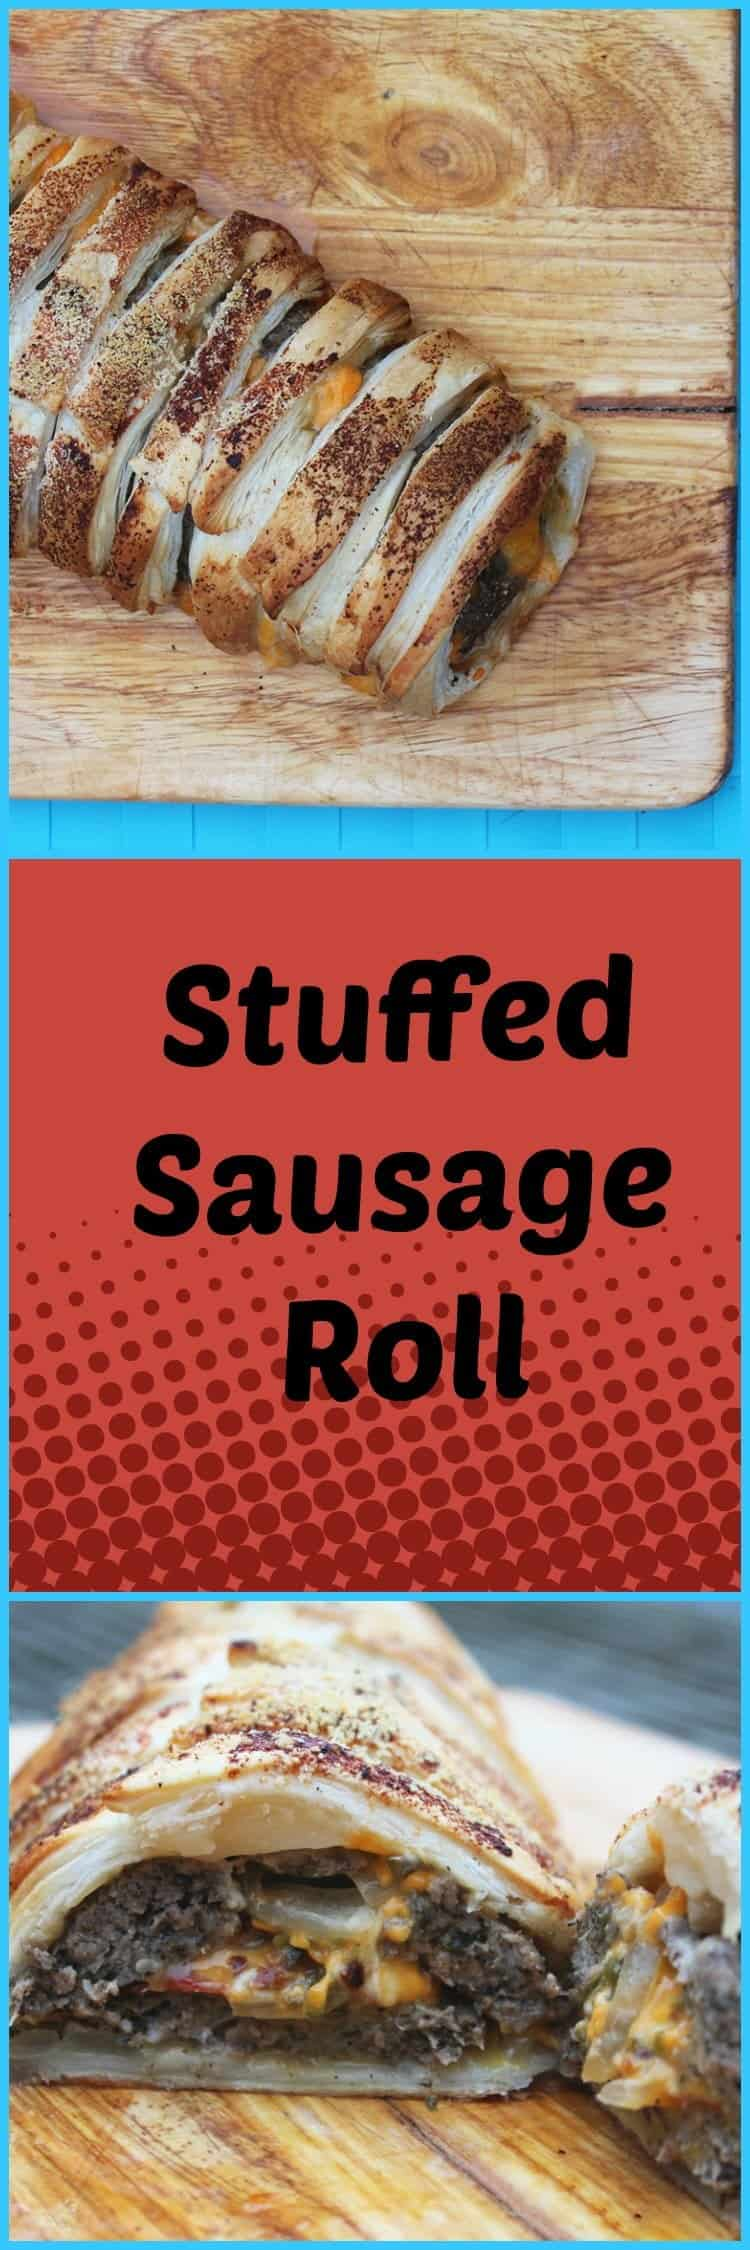 Stuffed Sausage Roll with cheese and jalapeno. Perfect for picnics and tailgating!